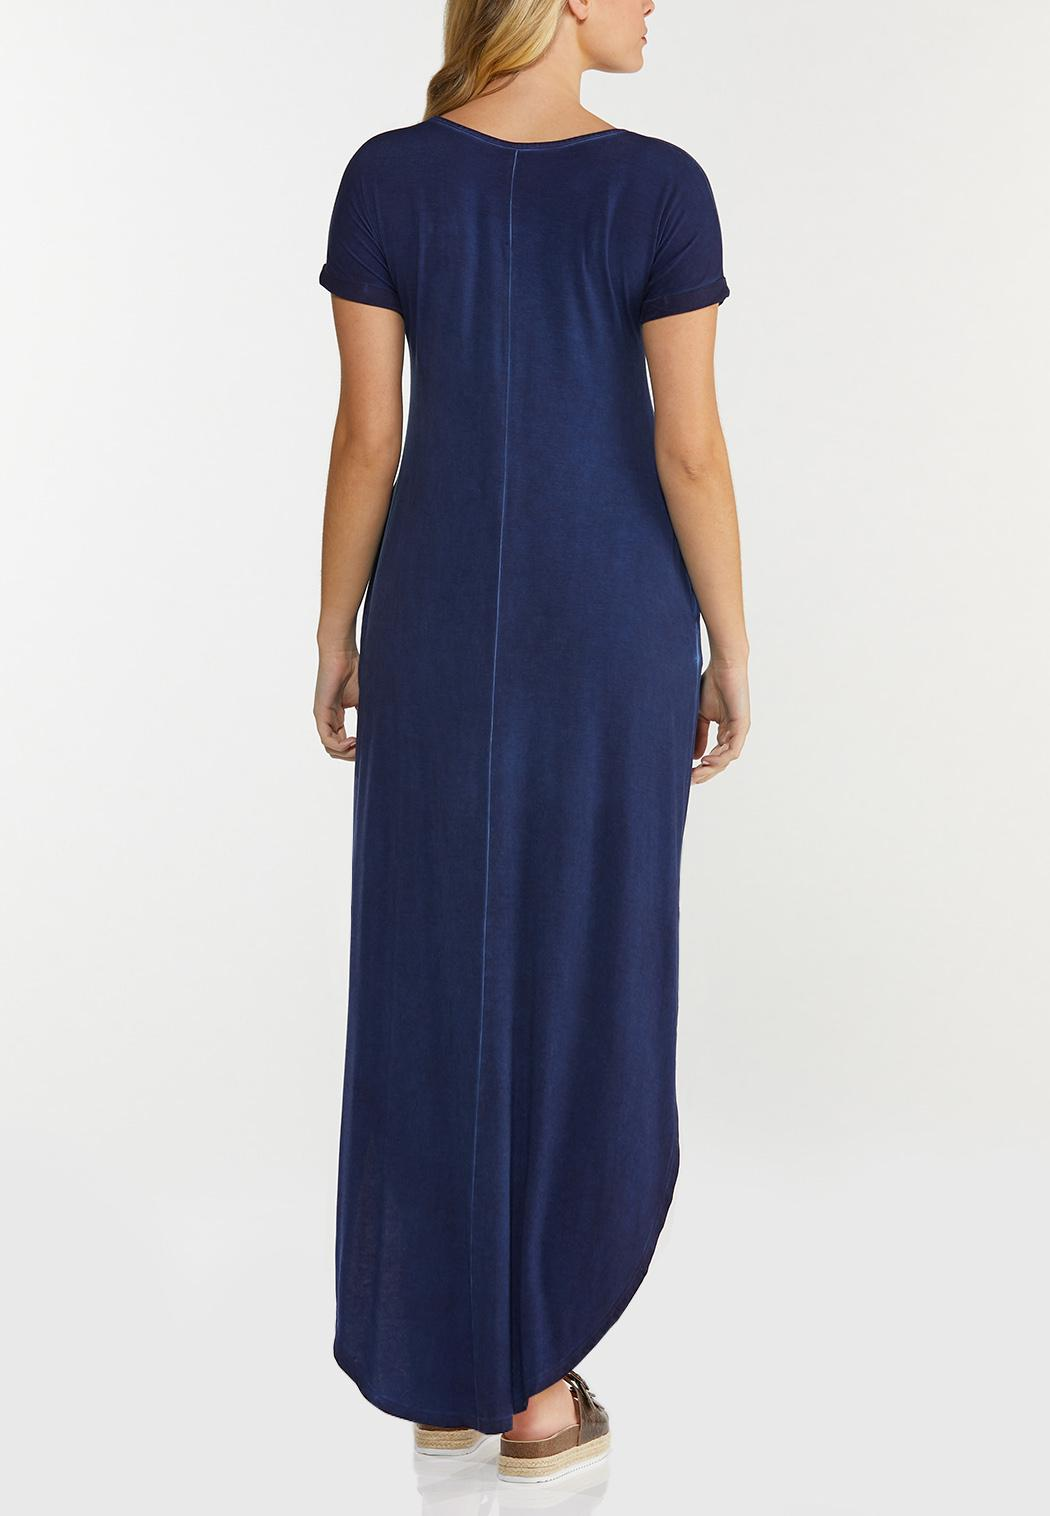 Knotted Tee Maxi Dress (Item #44500911)